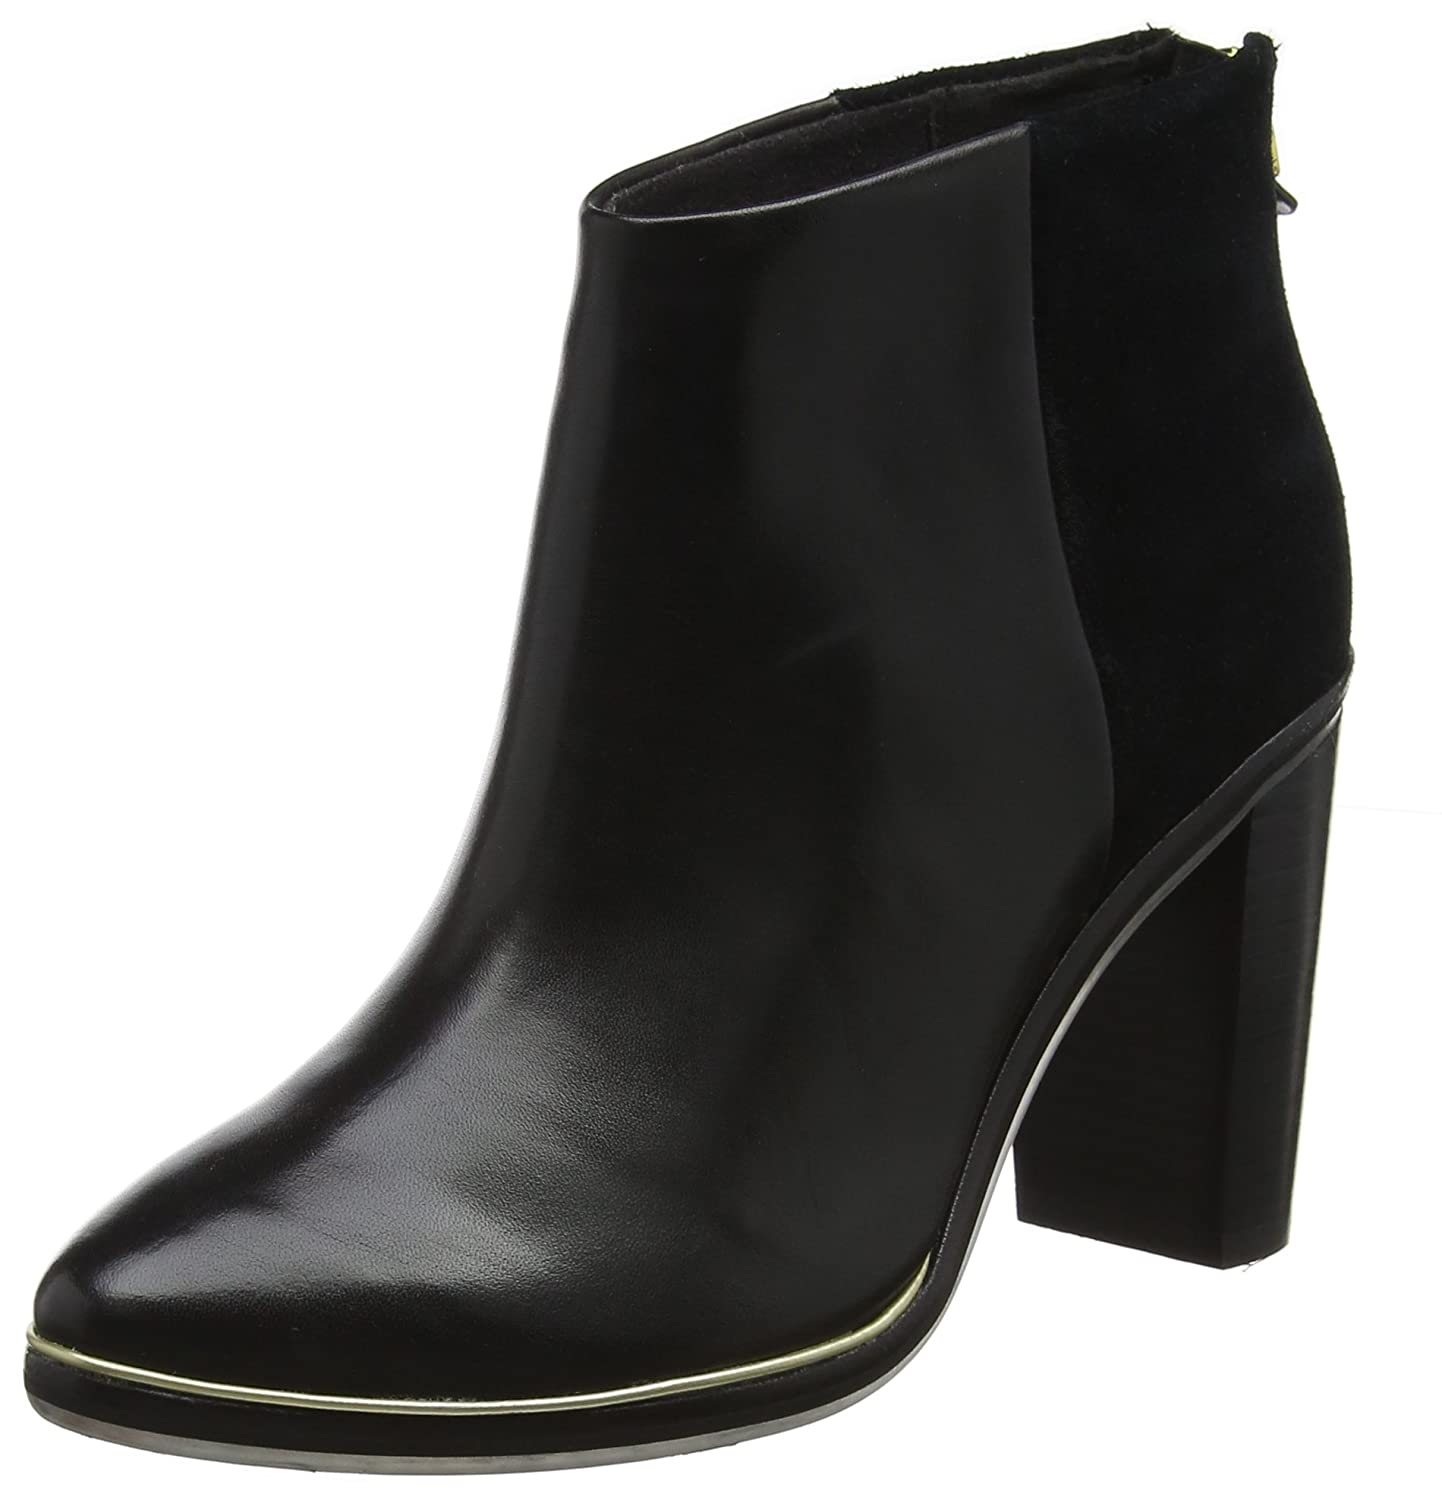 d5ed0109f4667e Ted Baker Women s Hiharu 2 Ankle Boots  Amazon.co.uk  Shoes   Bags